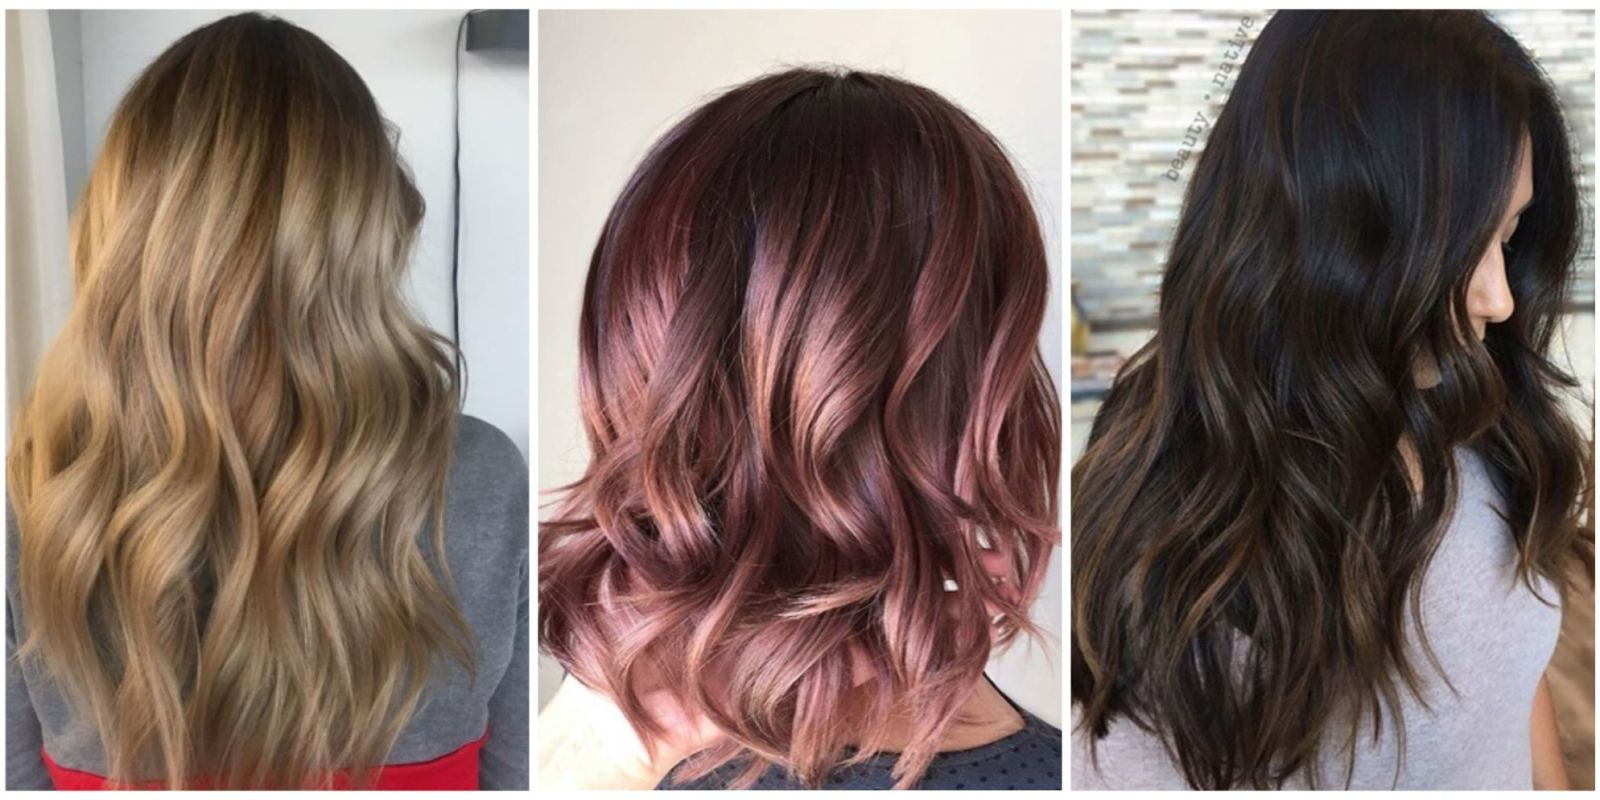 new hair dye styles hair color ideas and styles for 2018 best hair colors 1414 | landscape 1485278237 hair coloring ideas inspiration 2017